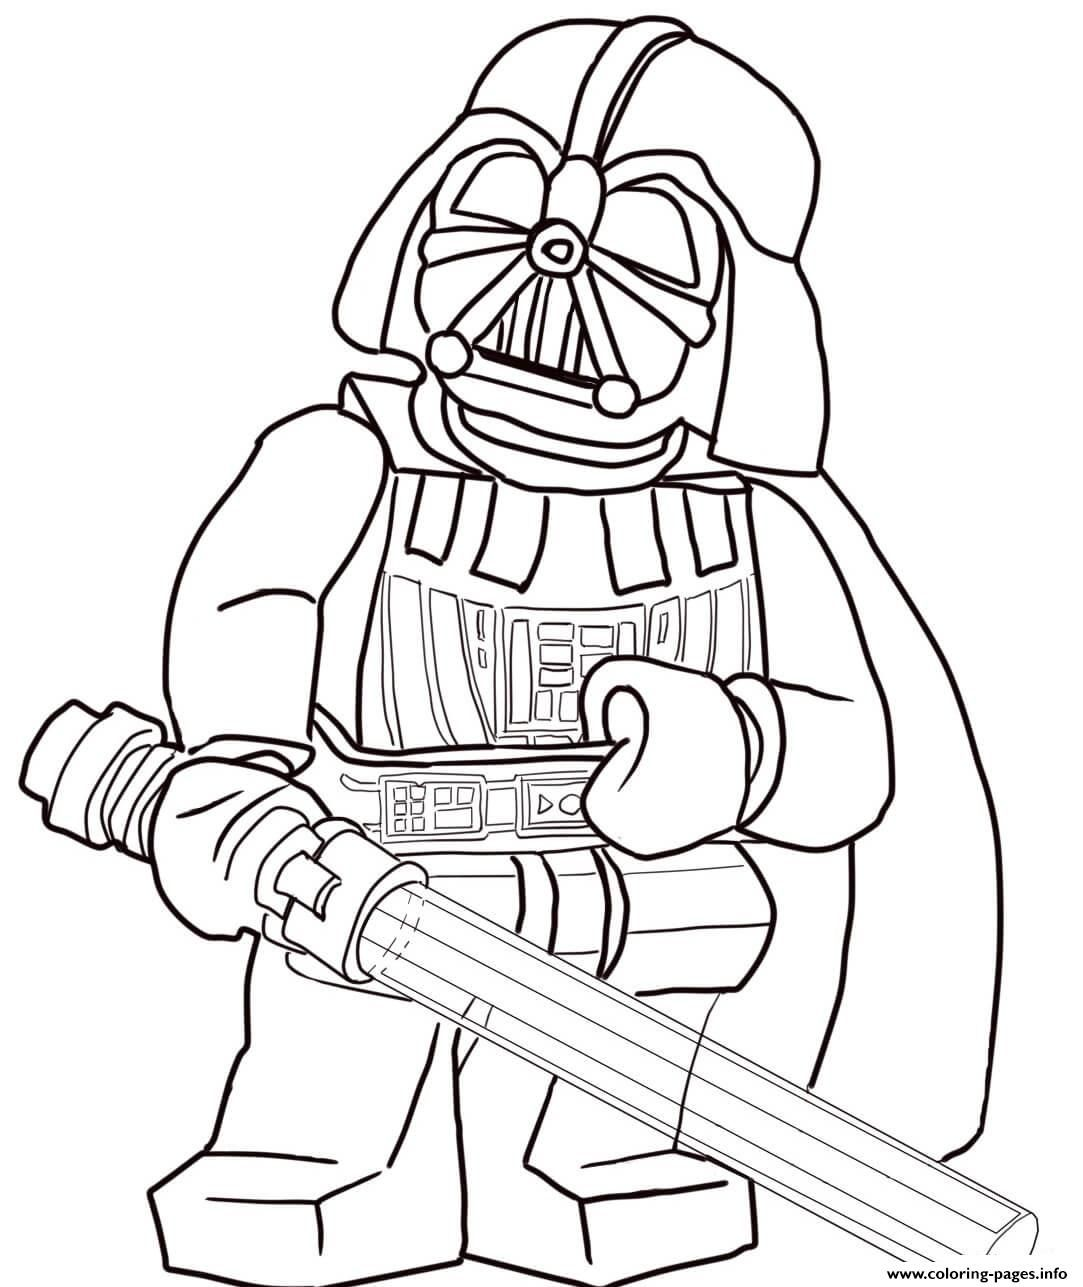 Print lego star wars darth vader coloring pages | Fiesta Birthday ...